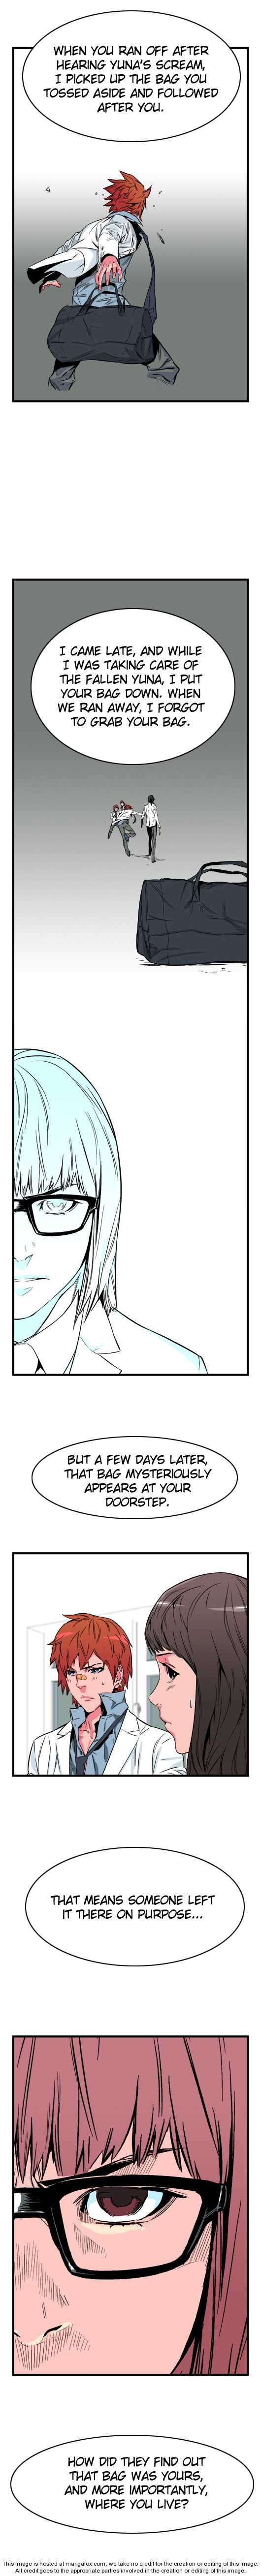 Noblesse 25 Page 2